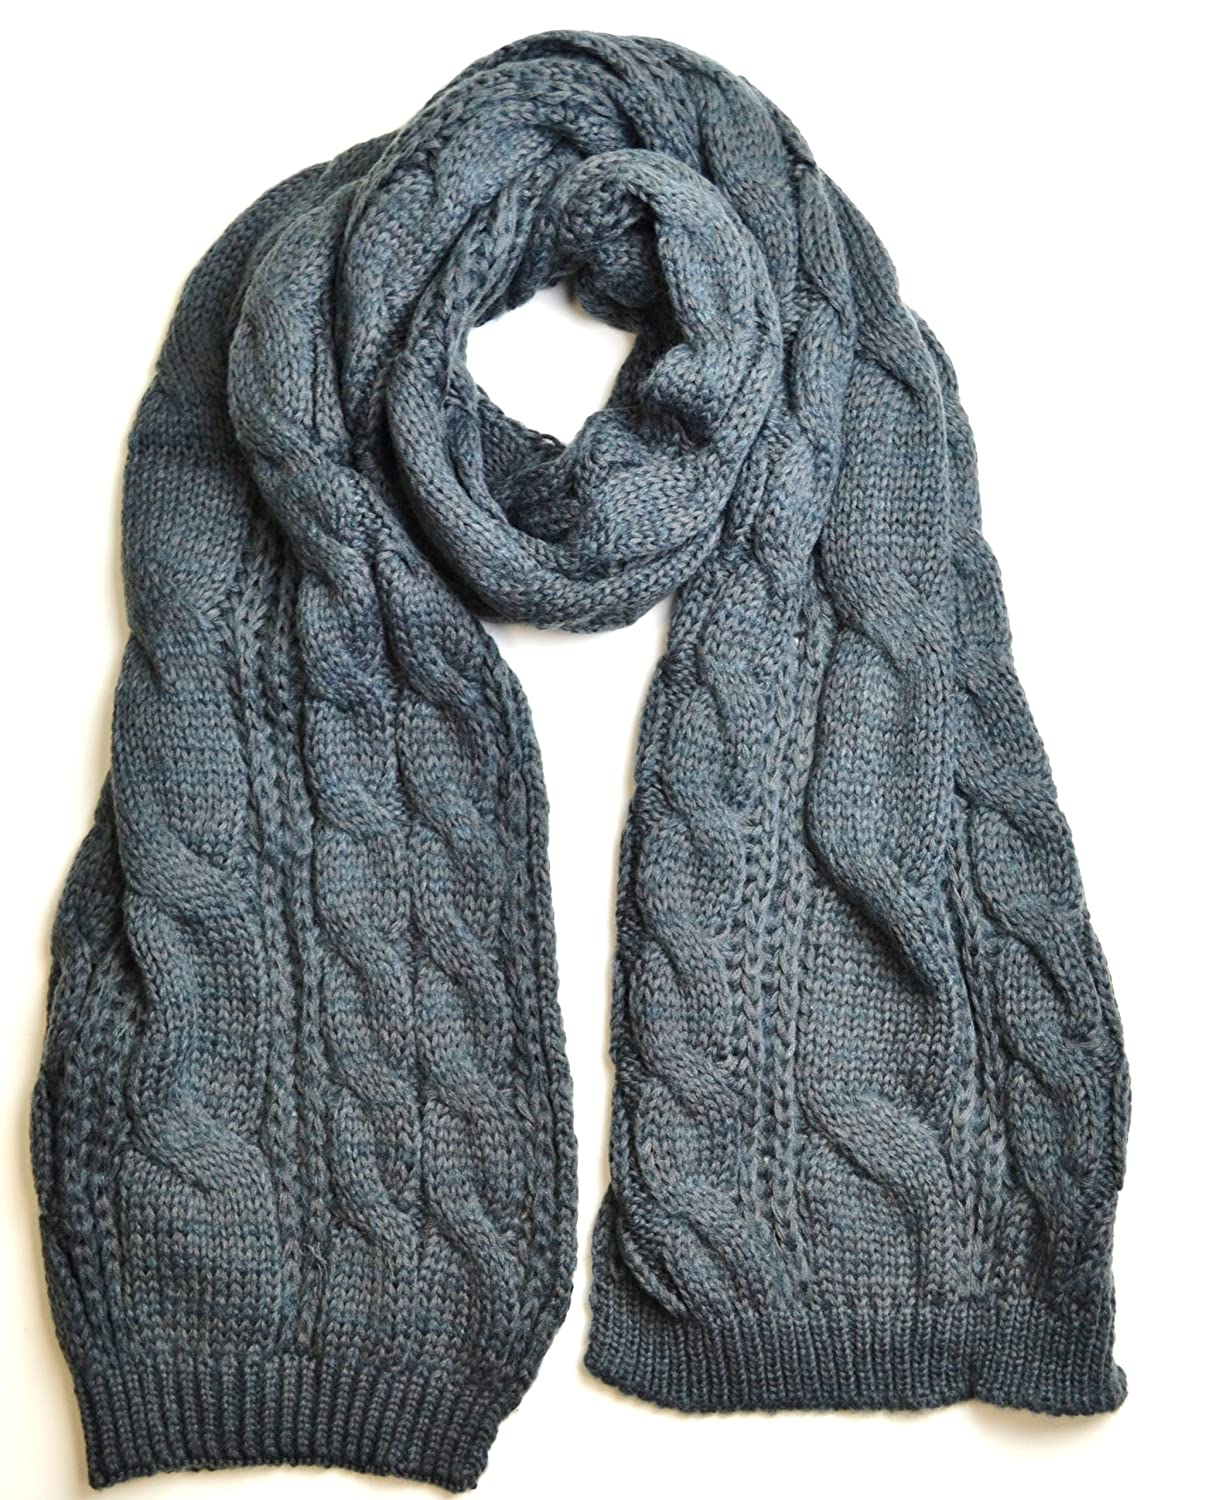 Charcoal Grey Chunky Knitted Cable Pattern Unisex Thick Winter Scarf